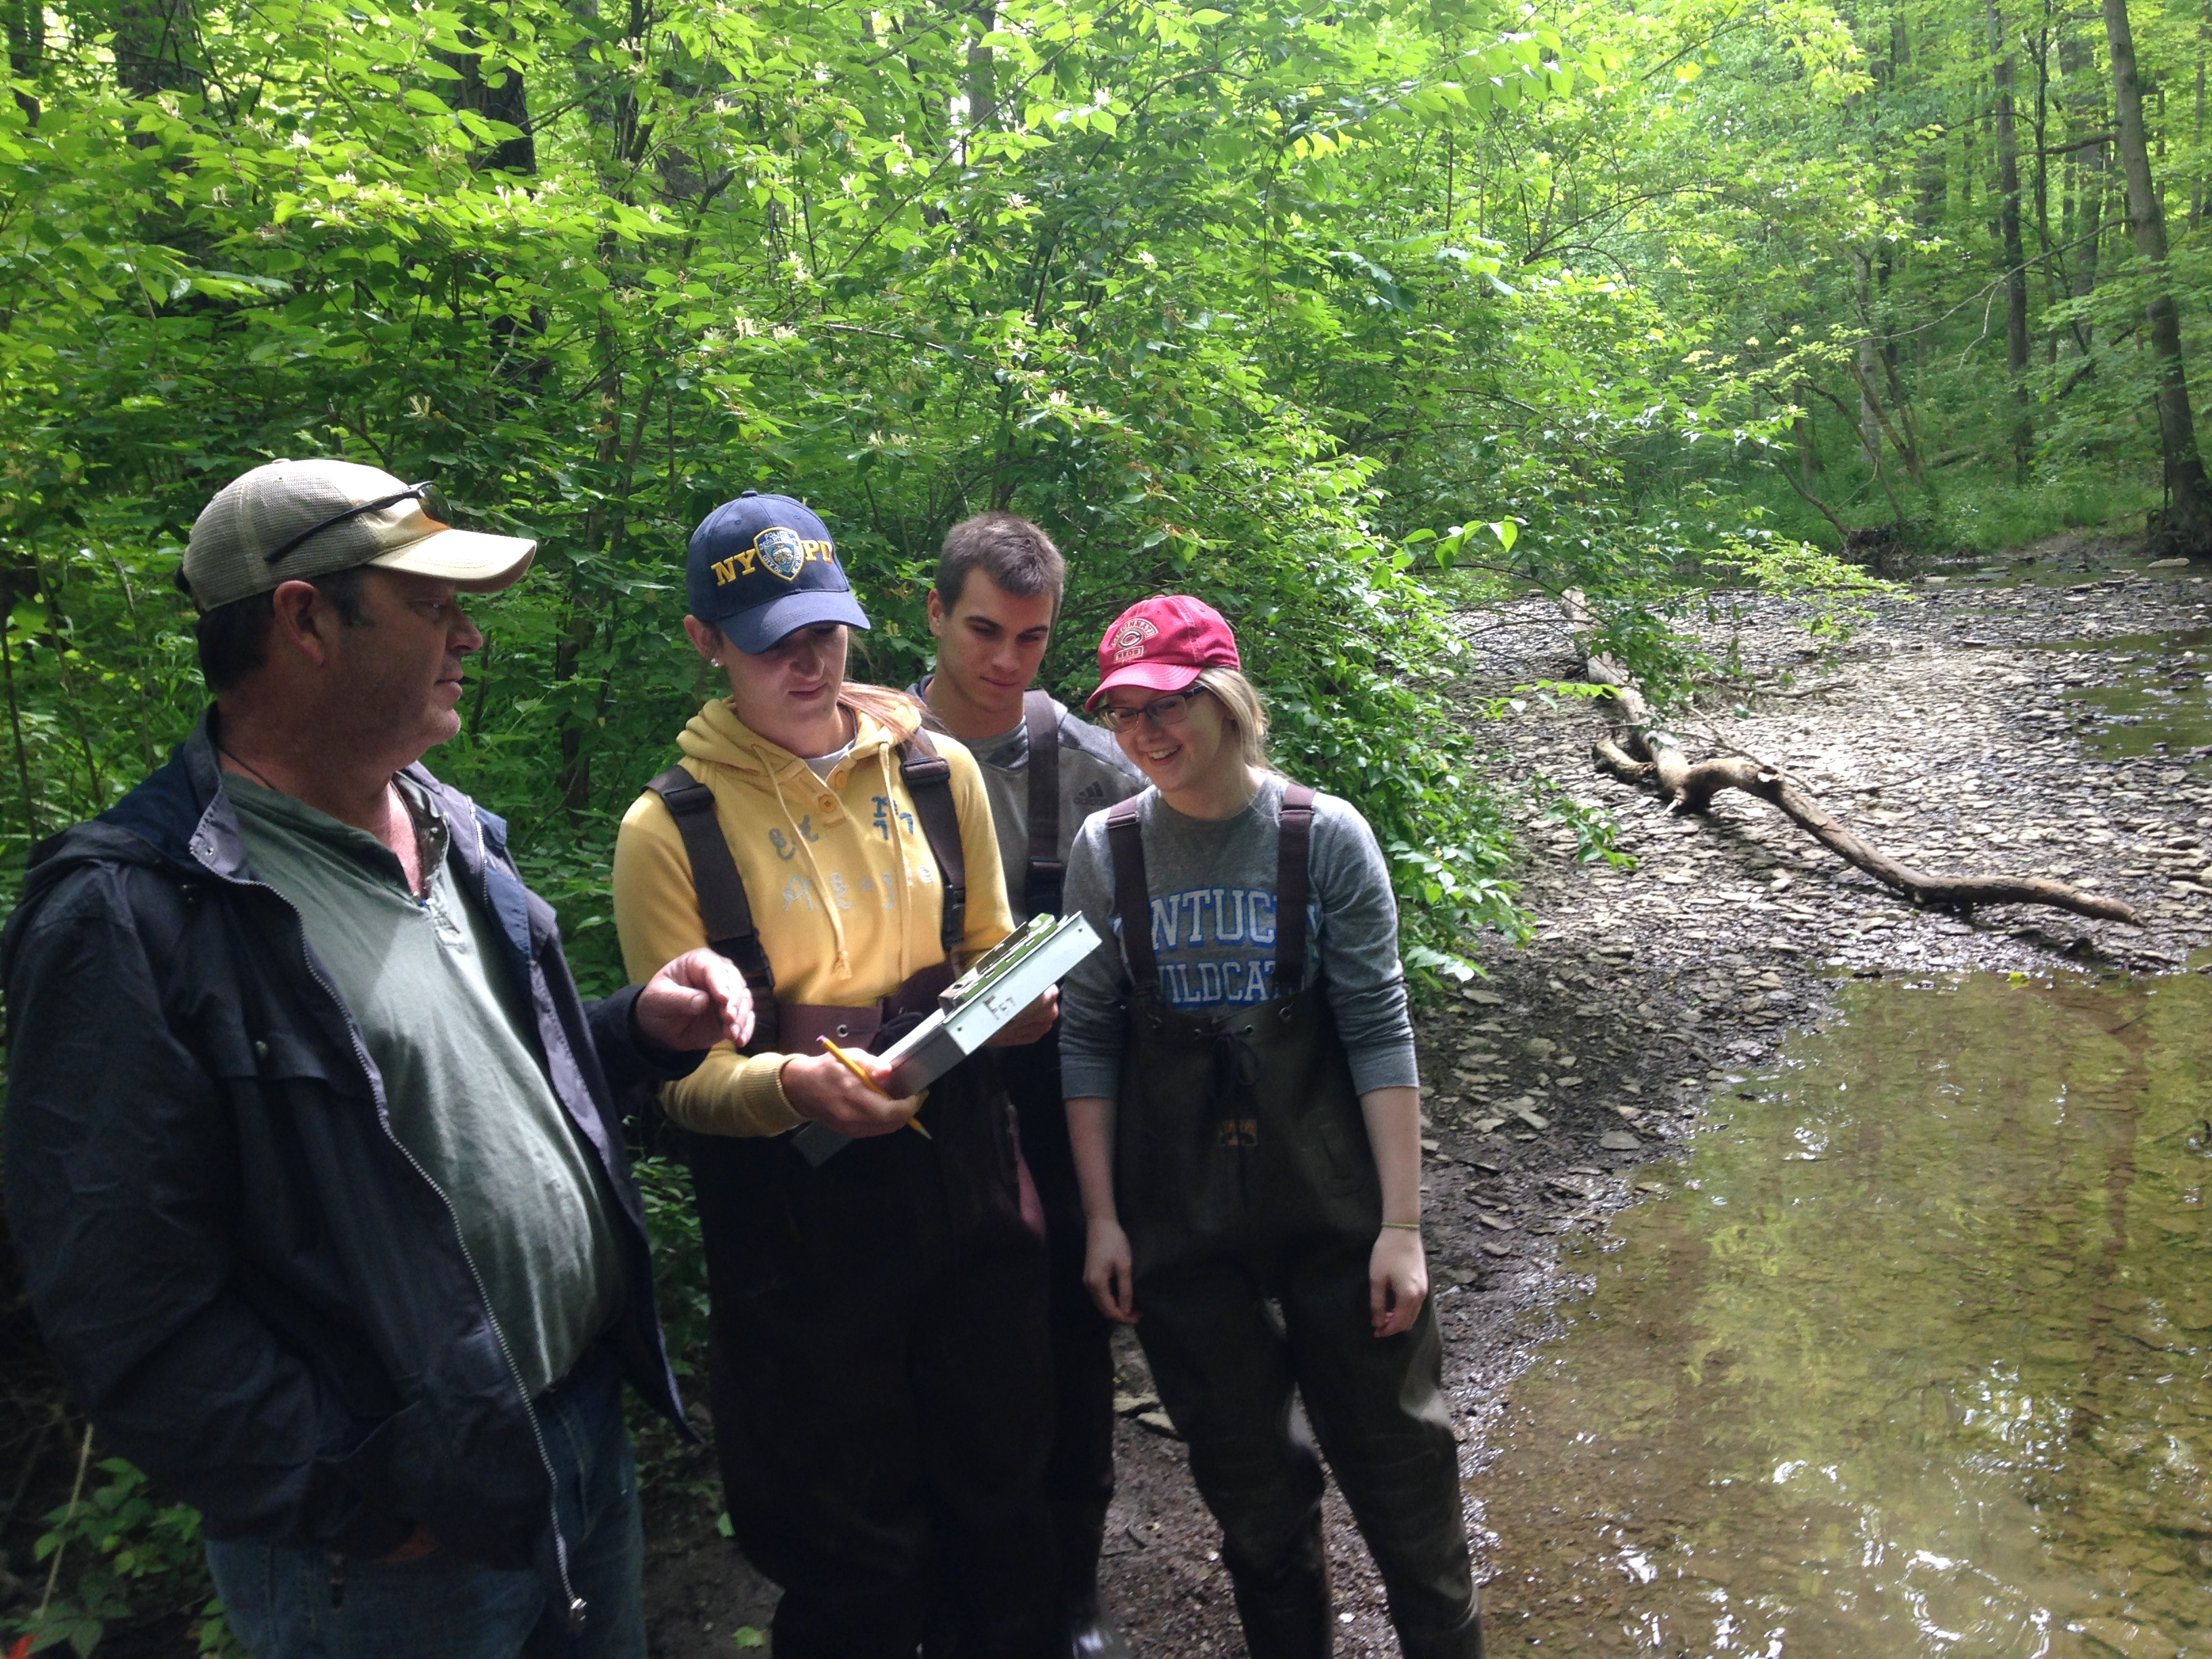 Habitat Assessment - Mark, Tori, Lem, and Megan (17.1)